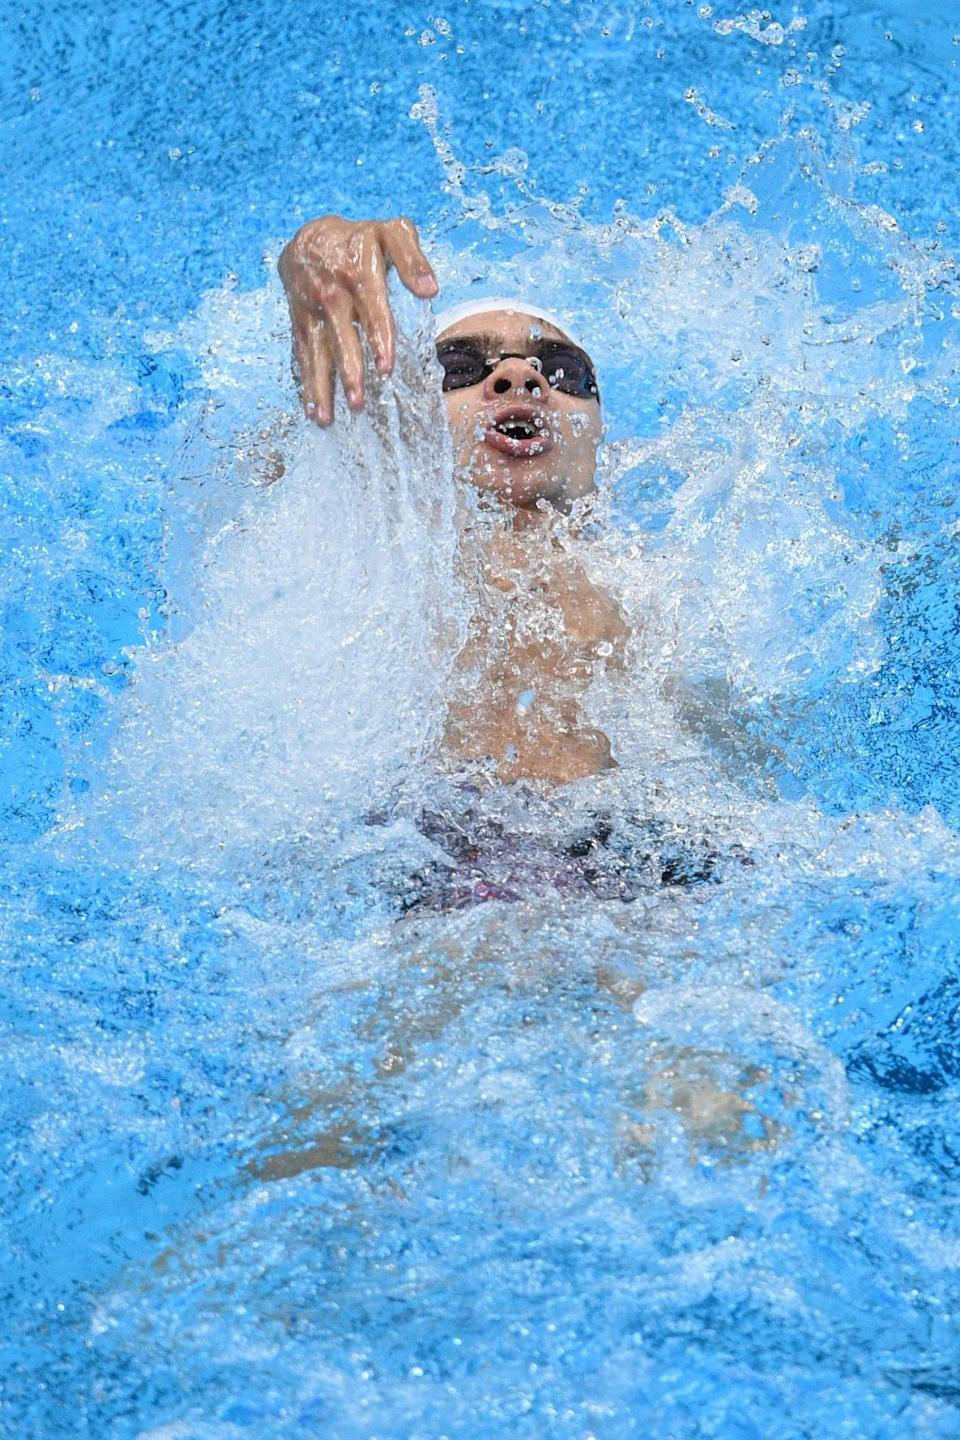 <p>The ROC's Rylov competes in the men's 200m backstroke semifinal.</p>